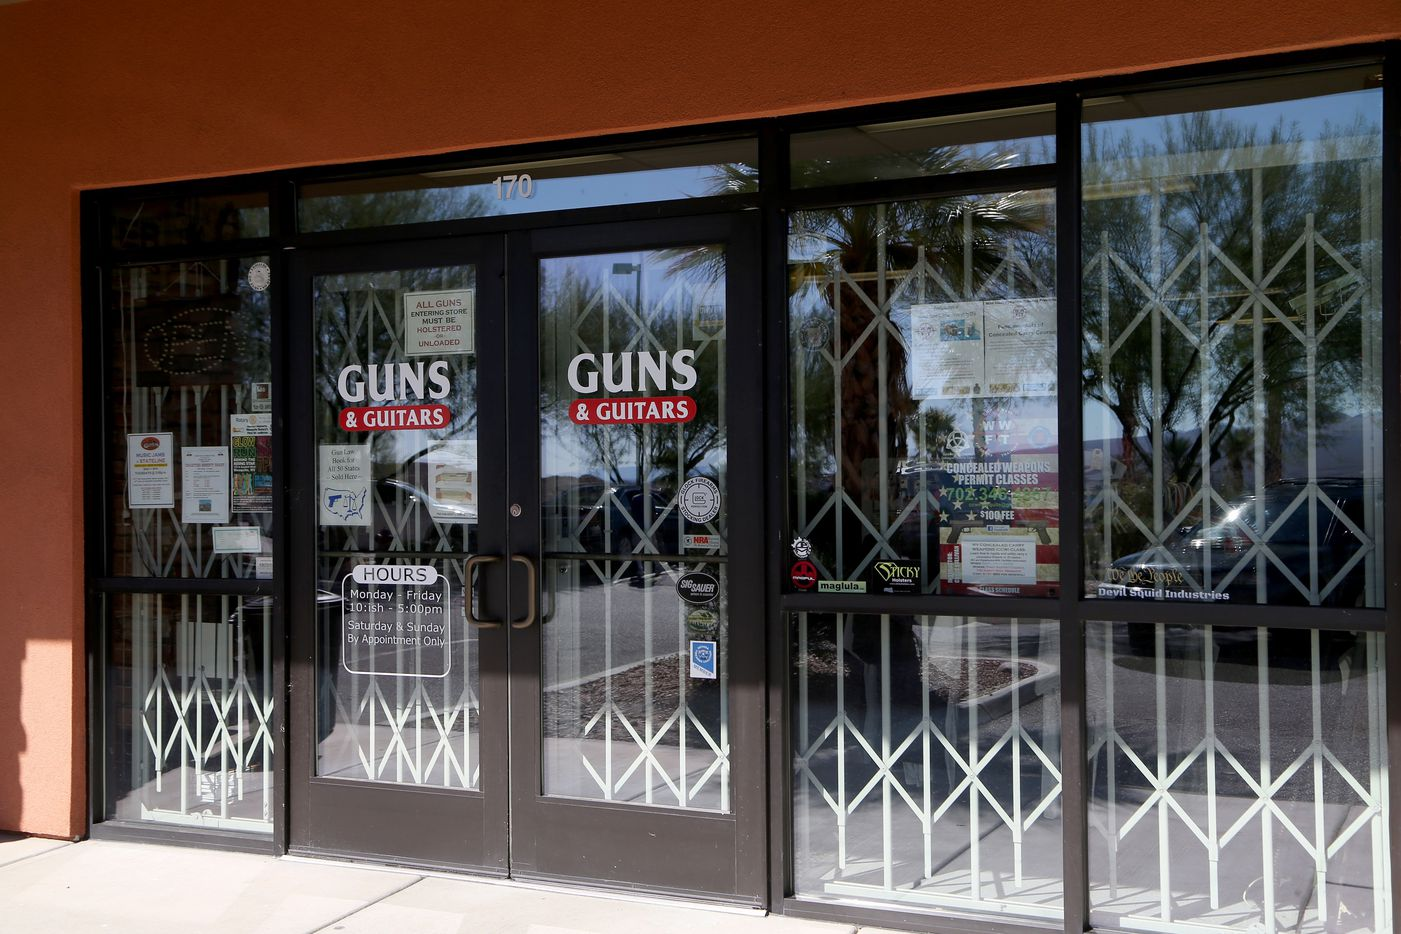 Guns & Guitars, a gun shop, where suspected Las Vegas gunman Stephen Paddock allegedly purchased firearms, October 2, 2017 in Mesquite, Nevada.